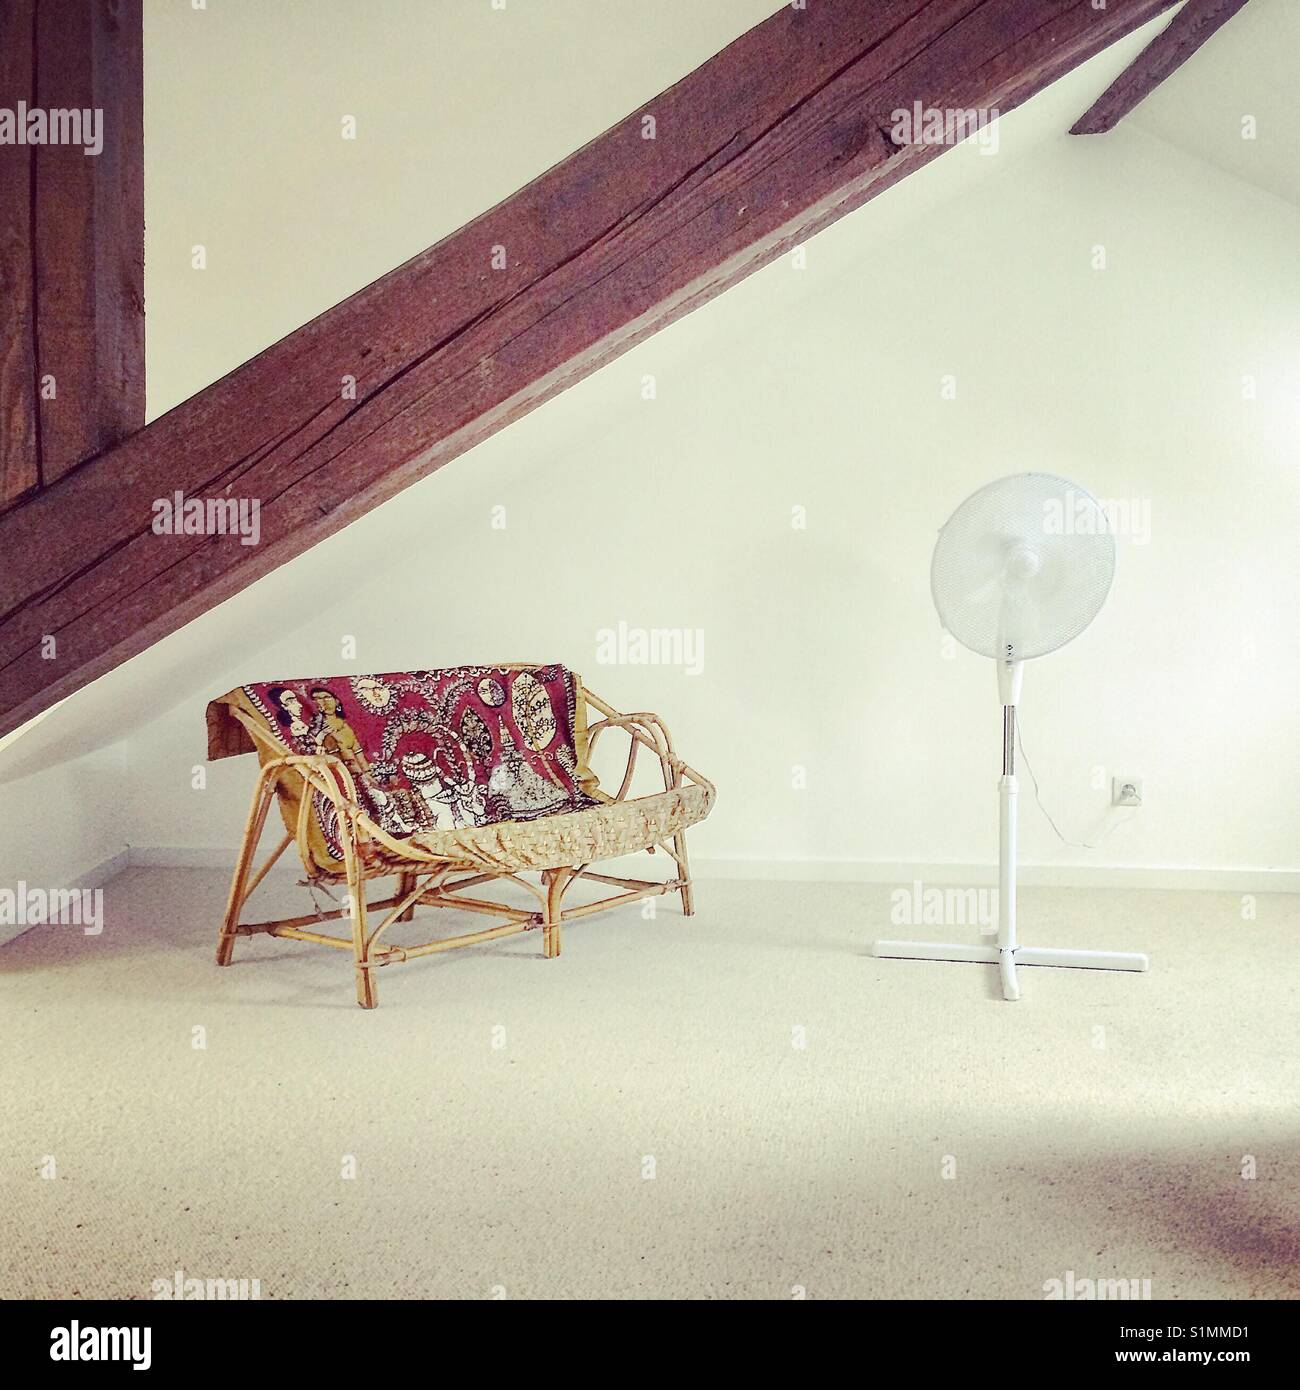 Seat and fan in attic room - Stock Image